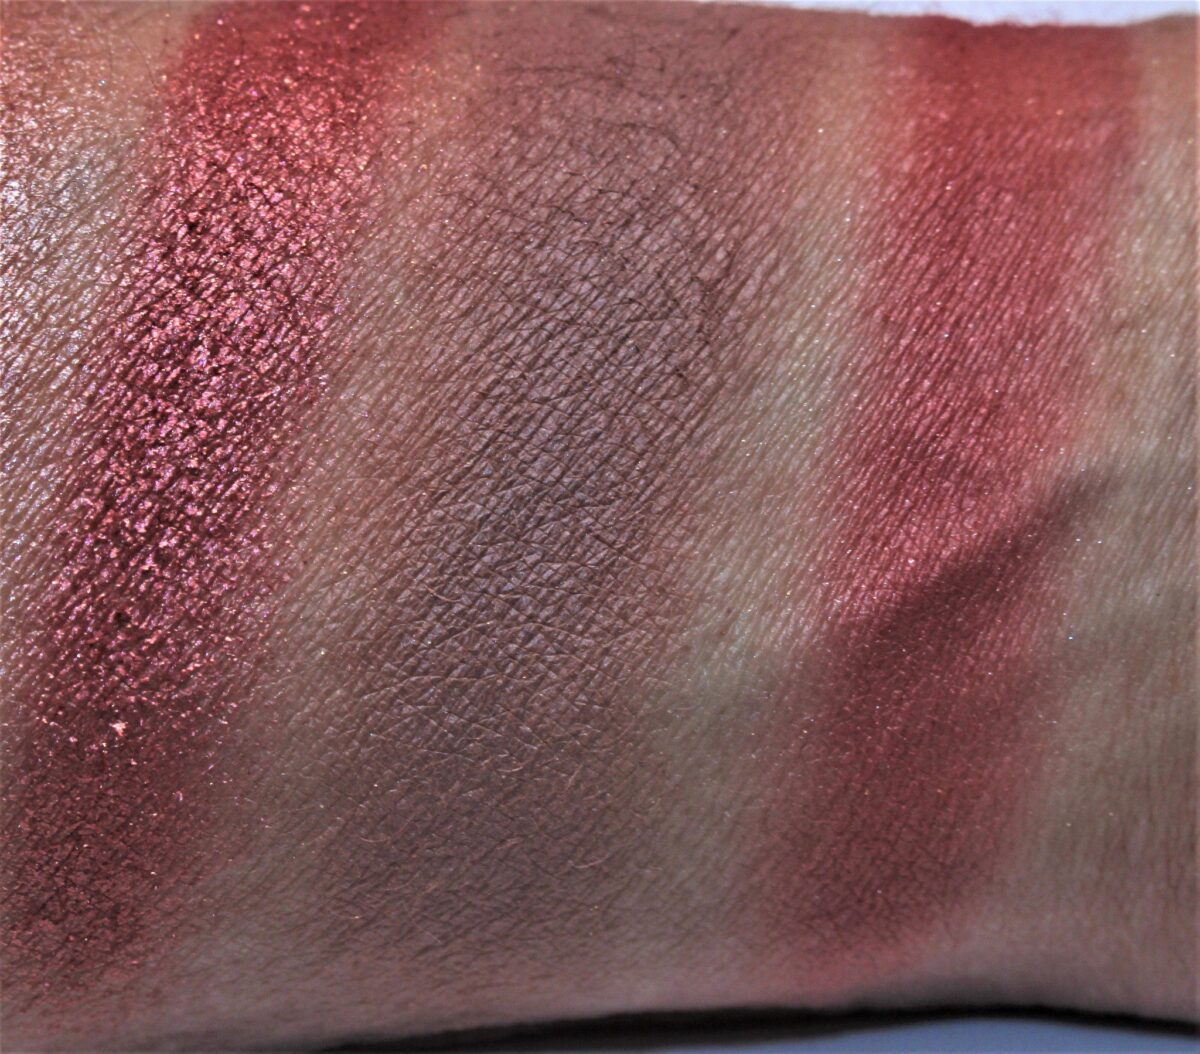 Huda-mauve-obsessions-middle-row-swatches